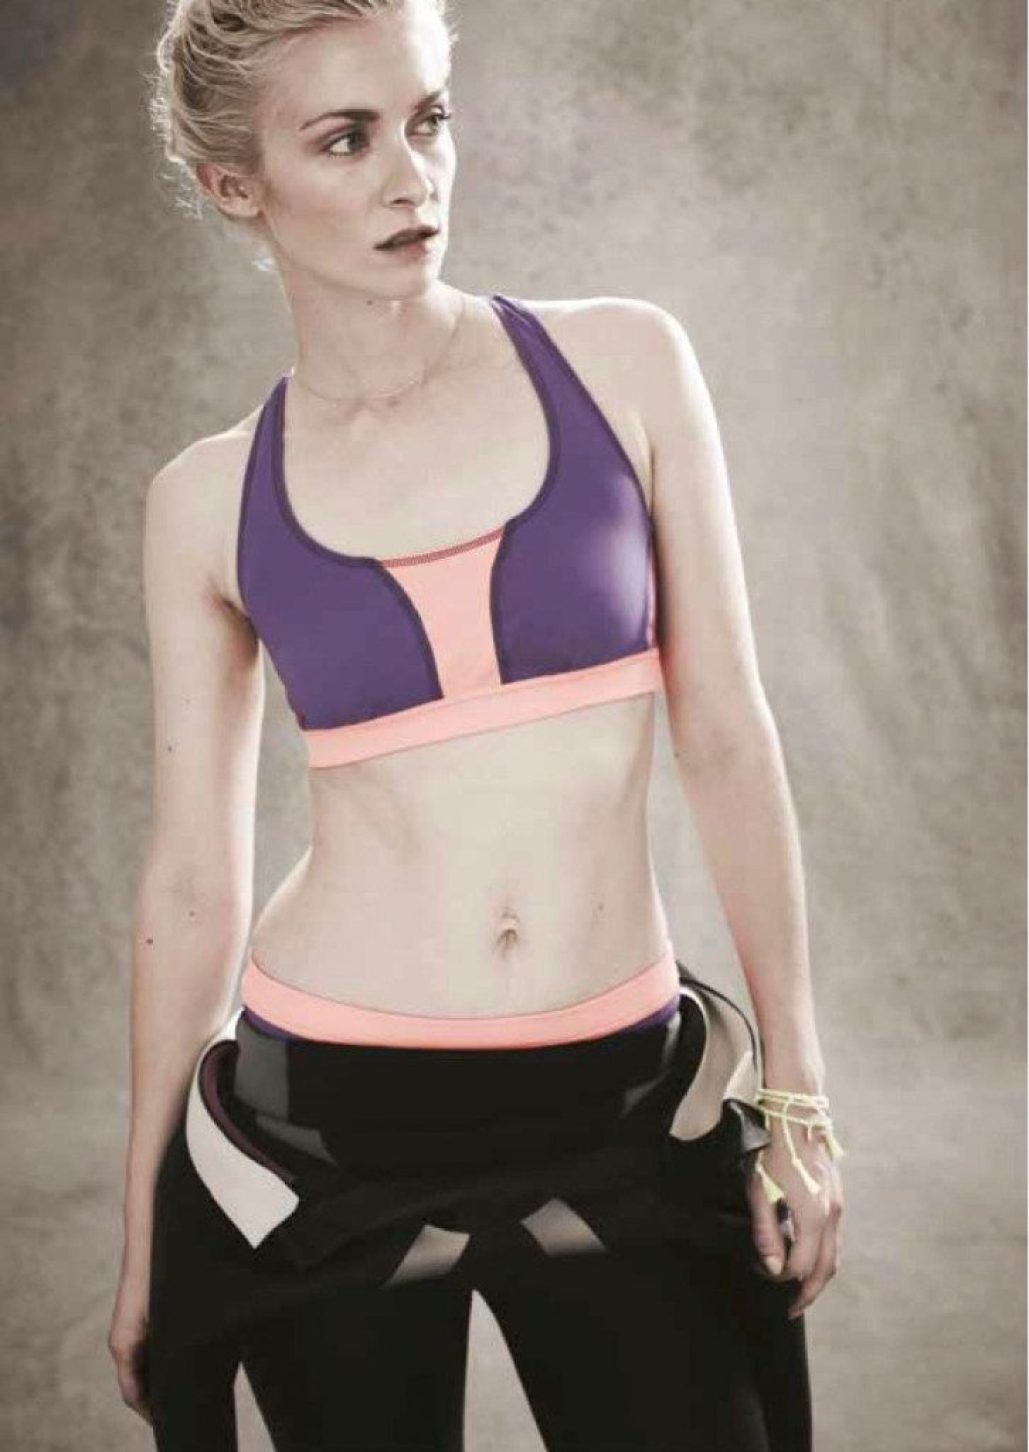 New Sweaty Betty fitness gear